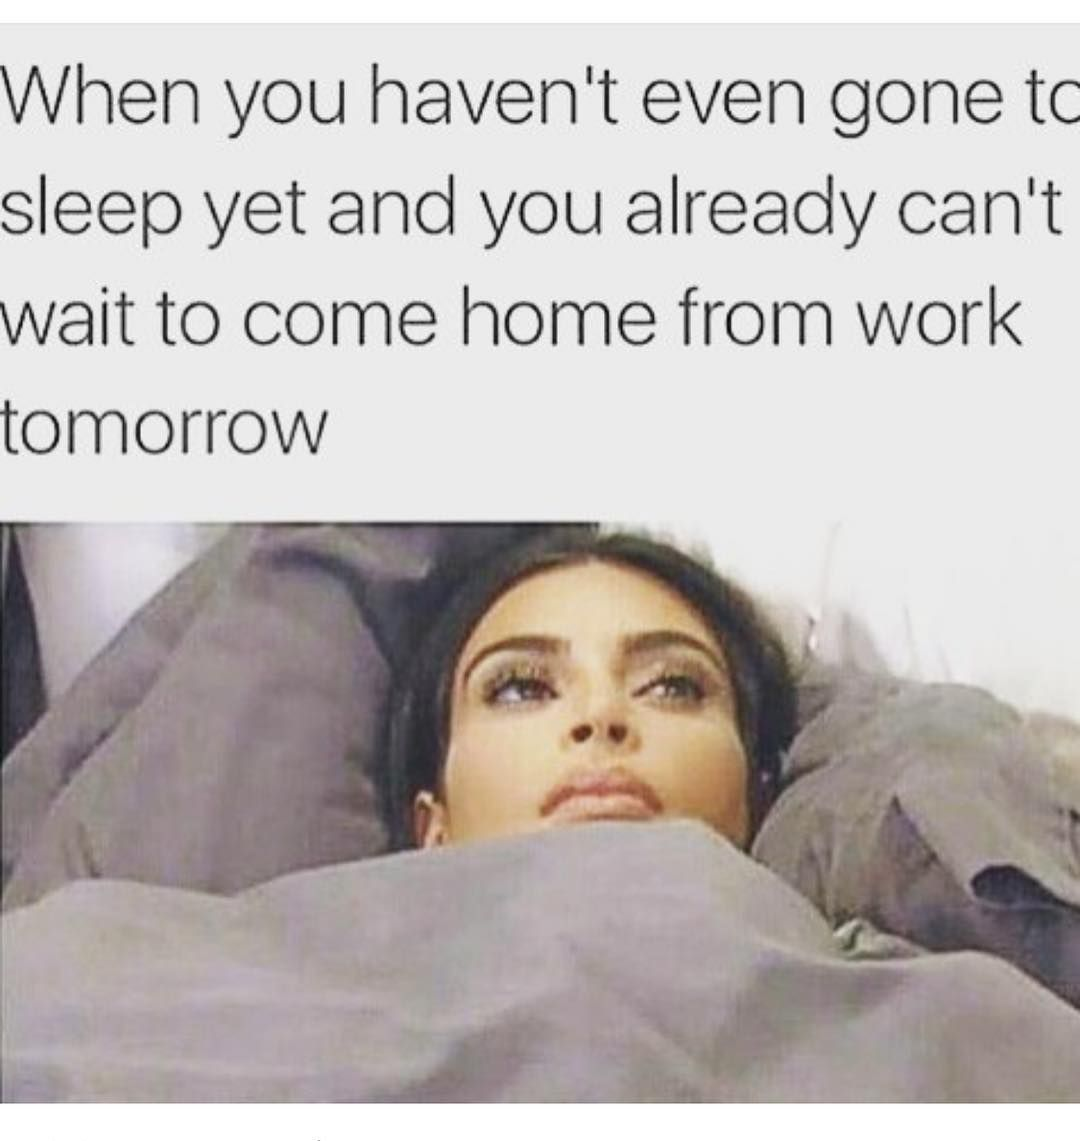 19 Memes To Laugh At While You Pretend To Have Work Life Balance Life Balance Working Life Work Life Balance